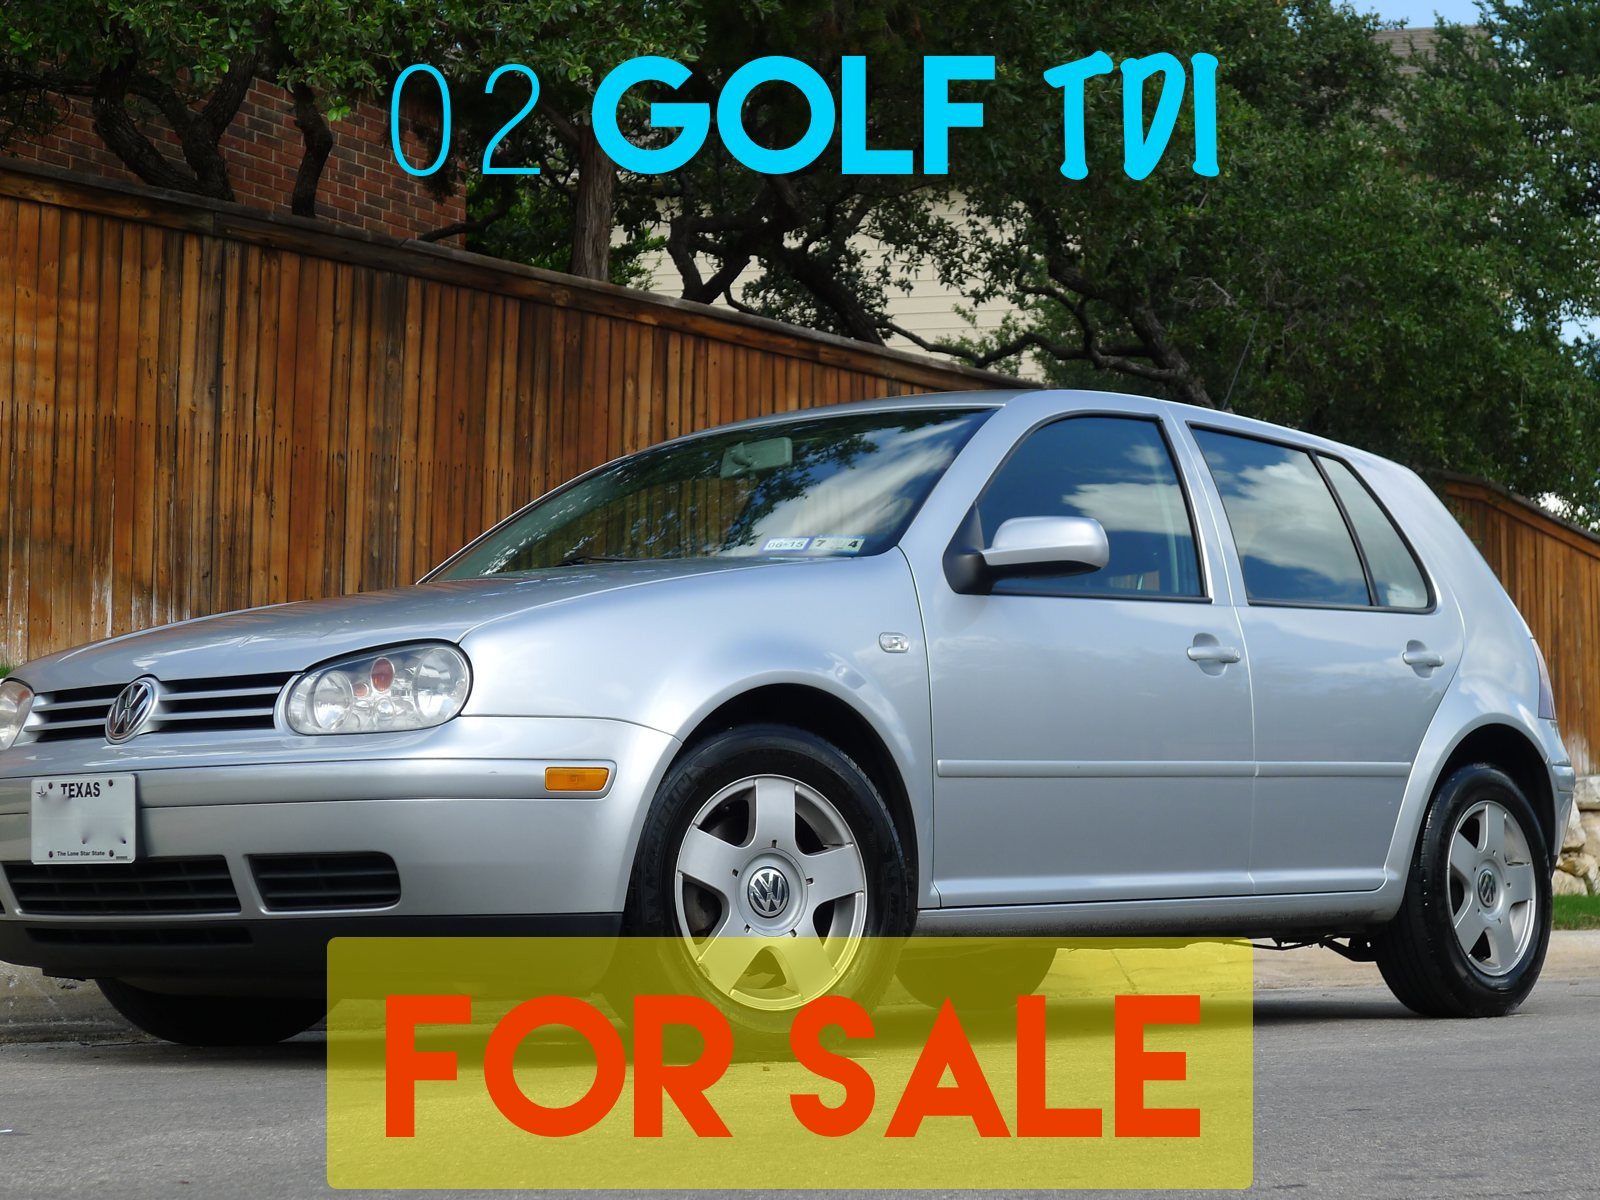 02 Golf TDI For Sale - San Antonio TX